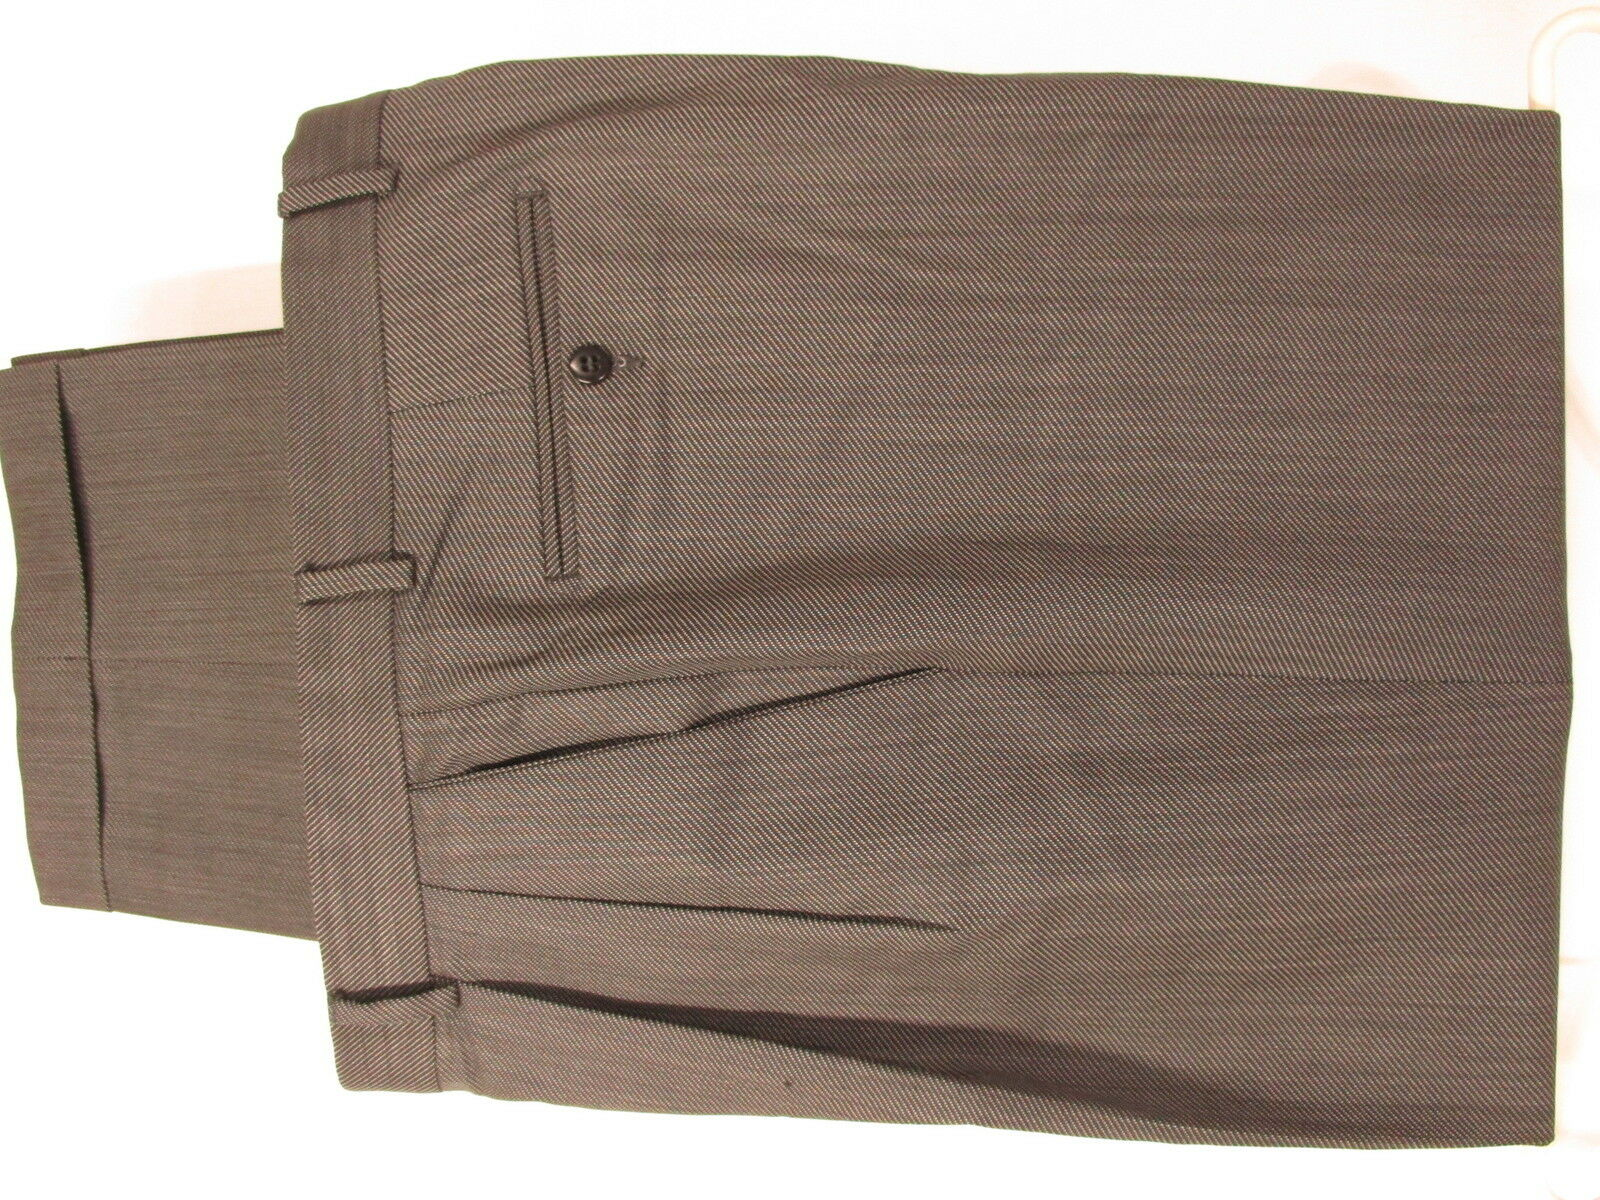 Zanella Austin Mens Grey Pleated Dress Pants Size 36 36x30.5